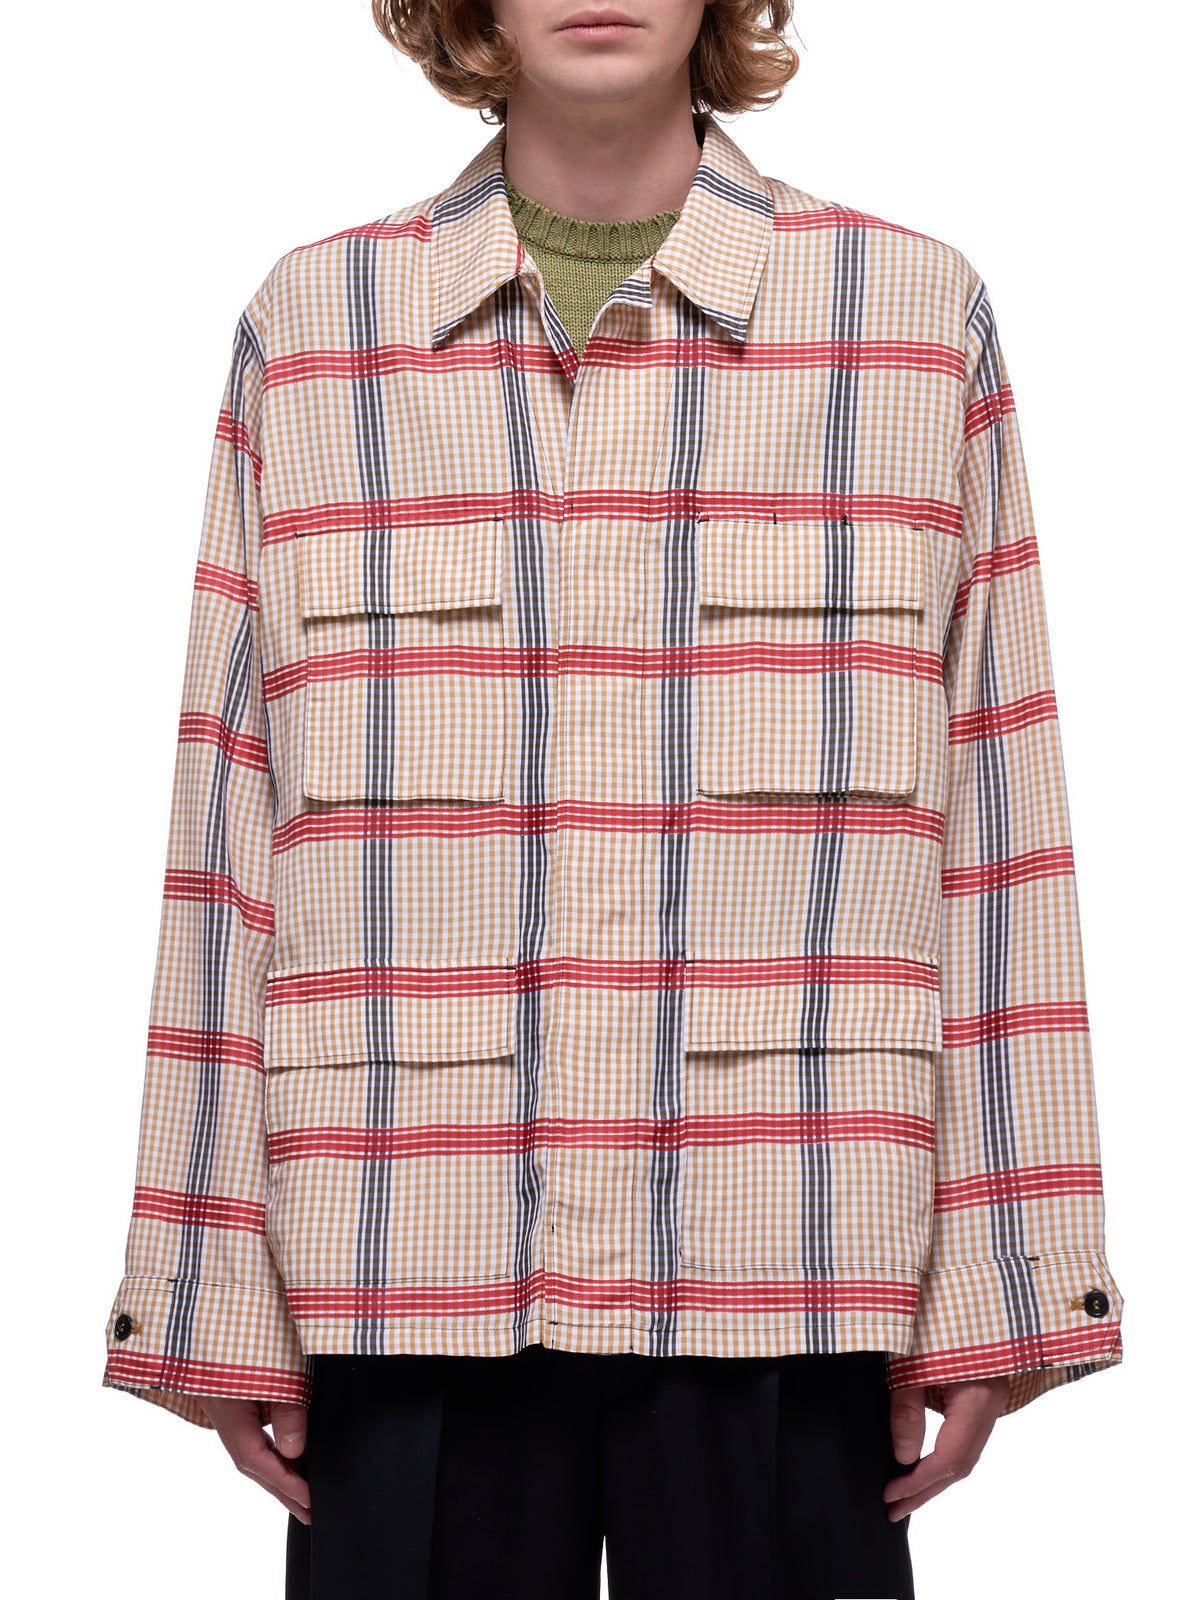 Check Shirt (JUMU0054U0-S52714-CHECK-MULTI)